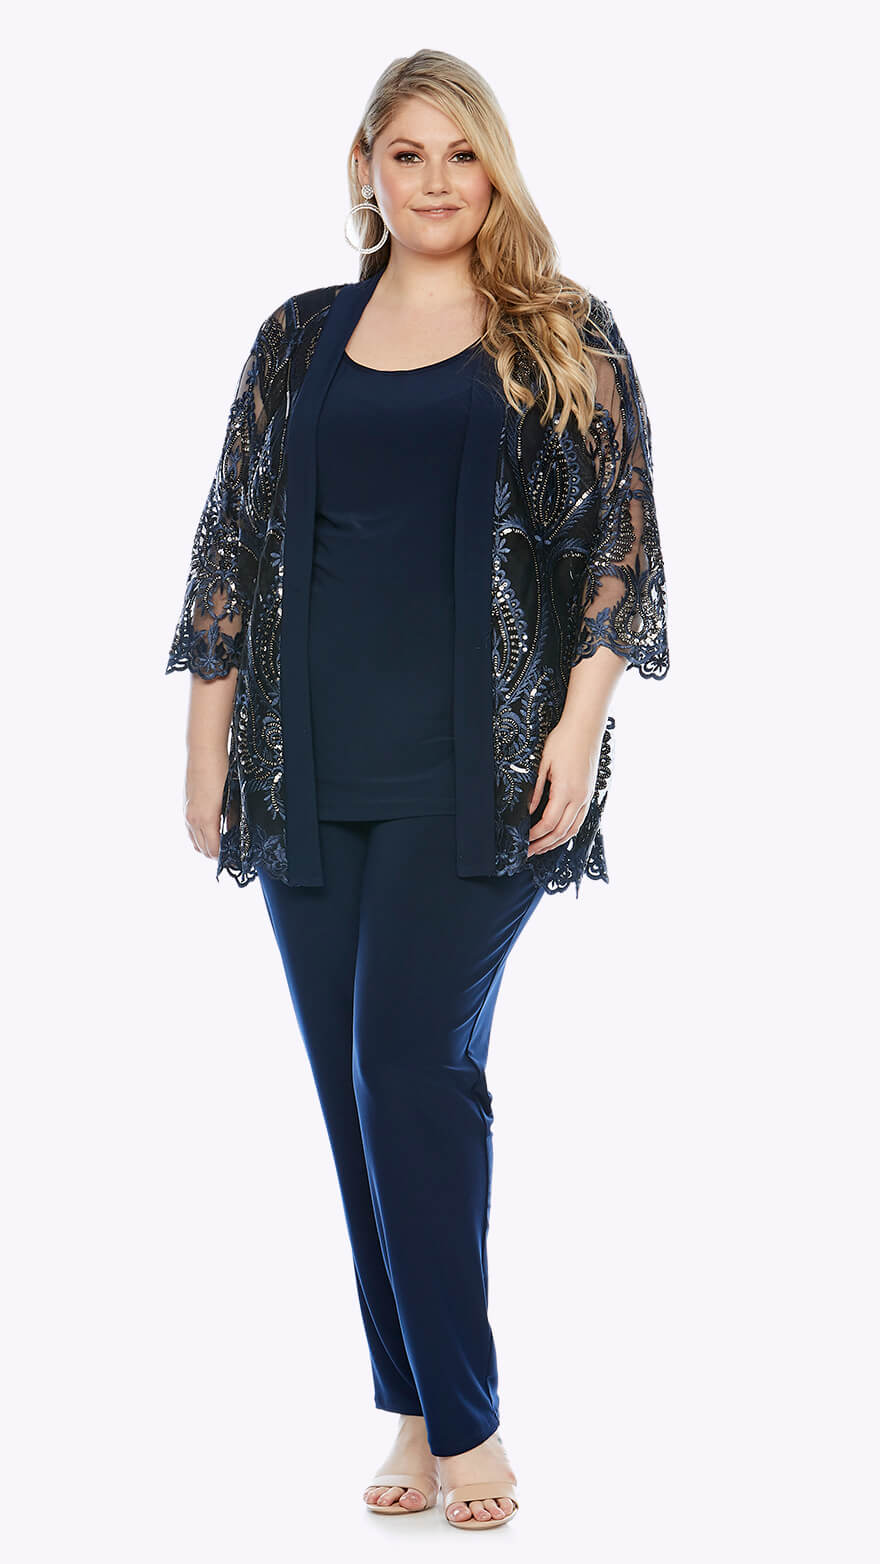 LJ0332 A three-piece pantsuit with embroidered lace jacket with 3/4 sleeves